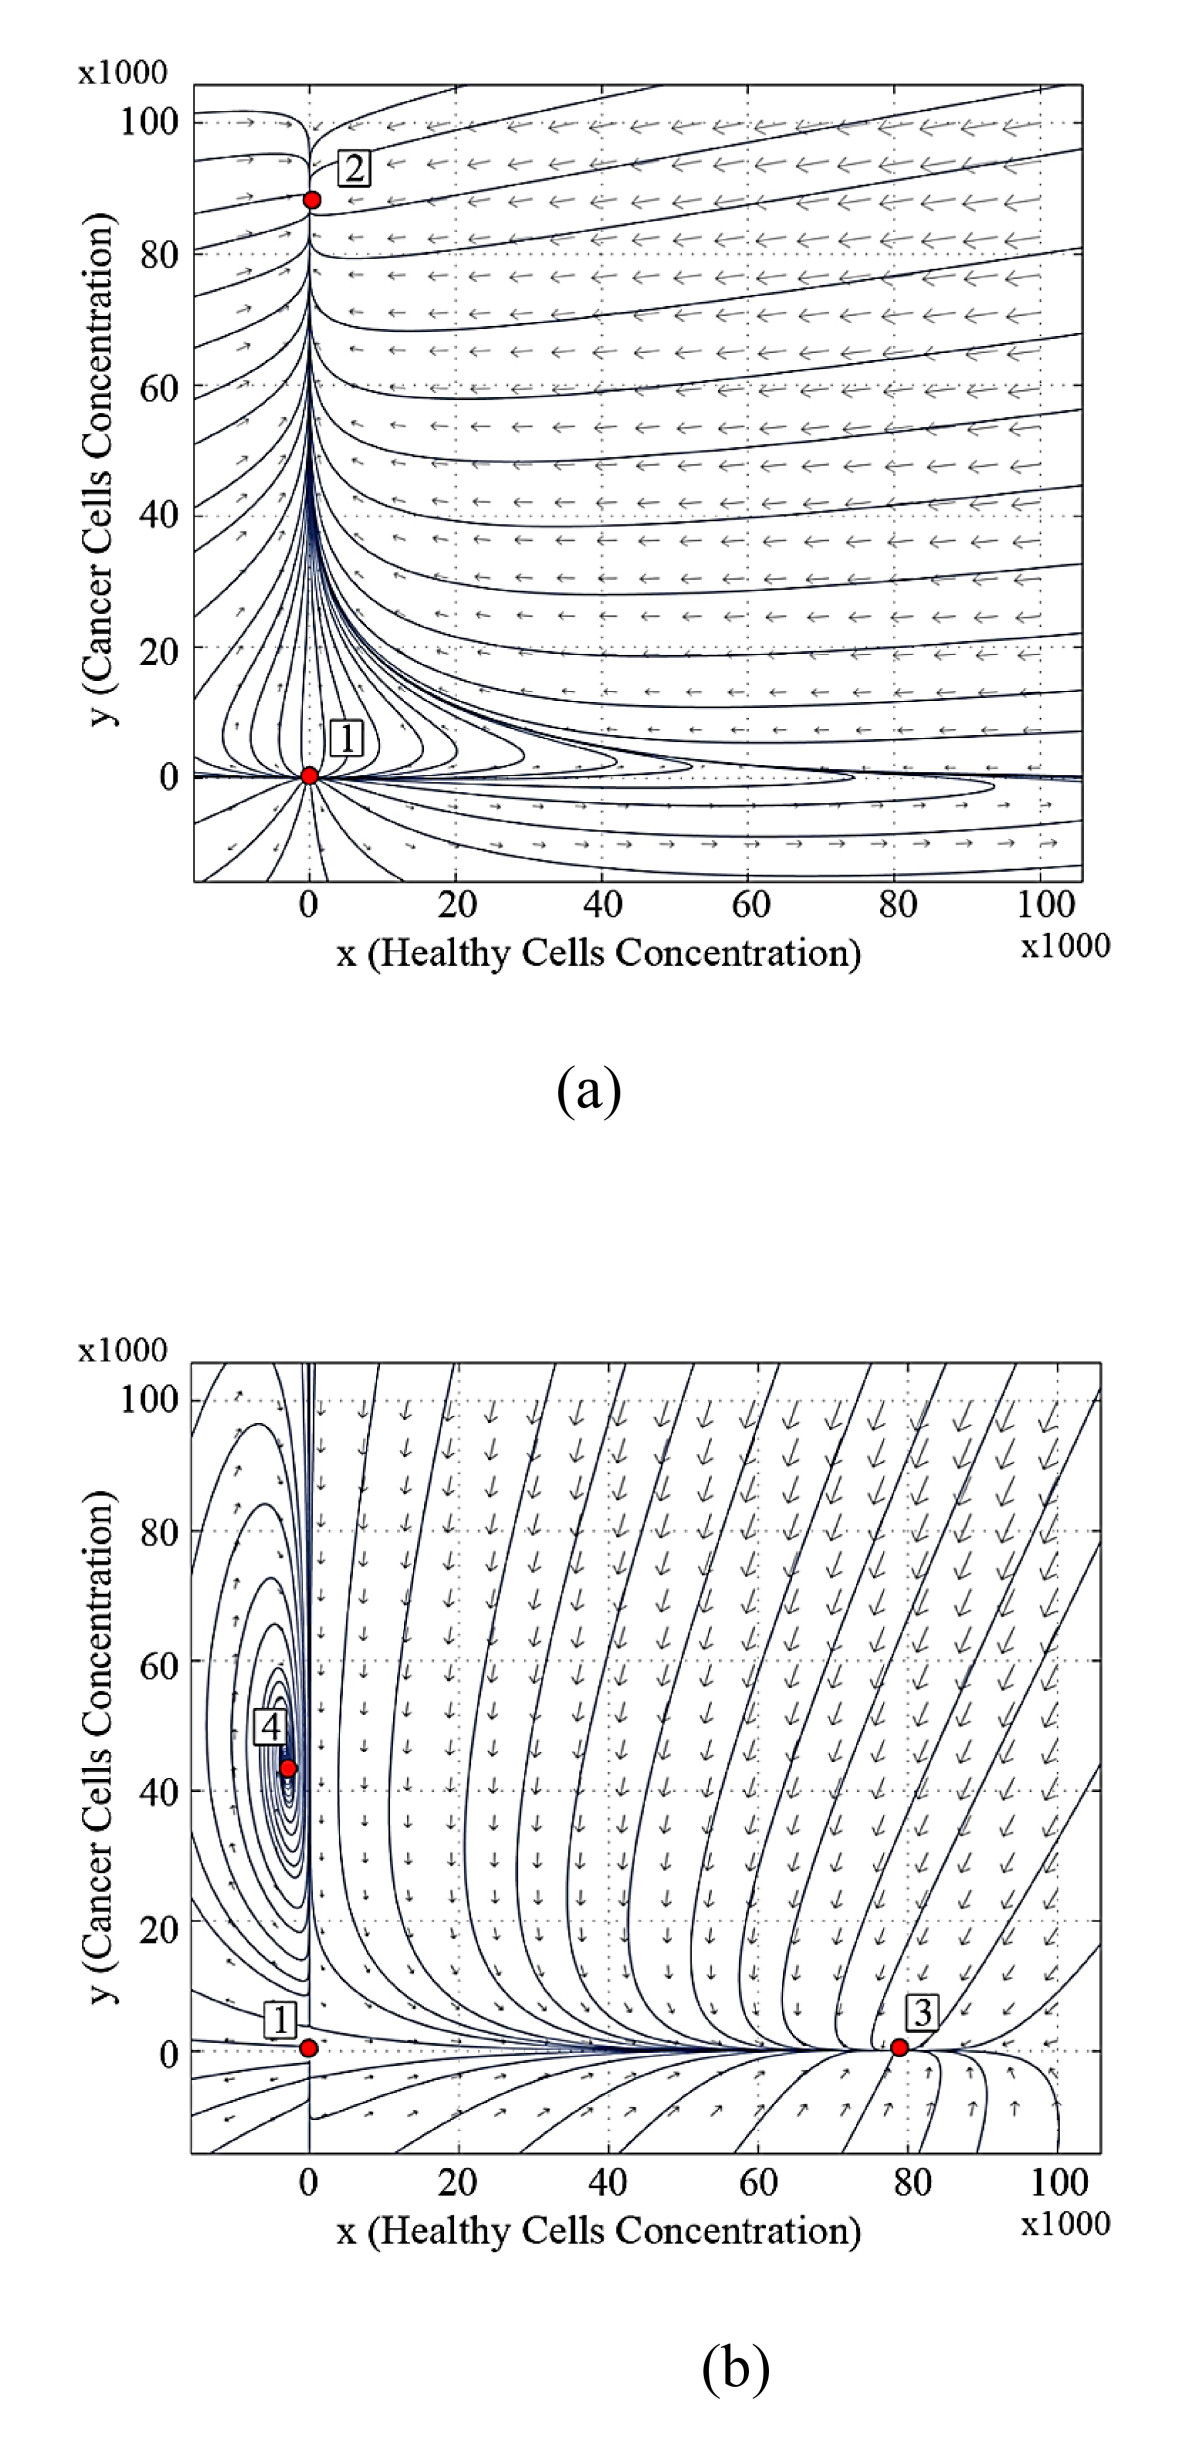 http://static-content.springer.com/image/art%3A10.1186%2F1742-4682-9-4/MediaObjects/12976_2011_Article_323_Fig4_HTML.jpg